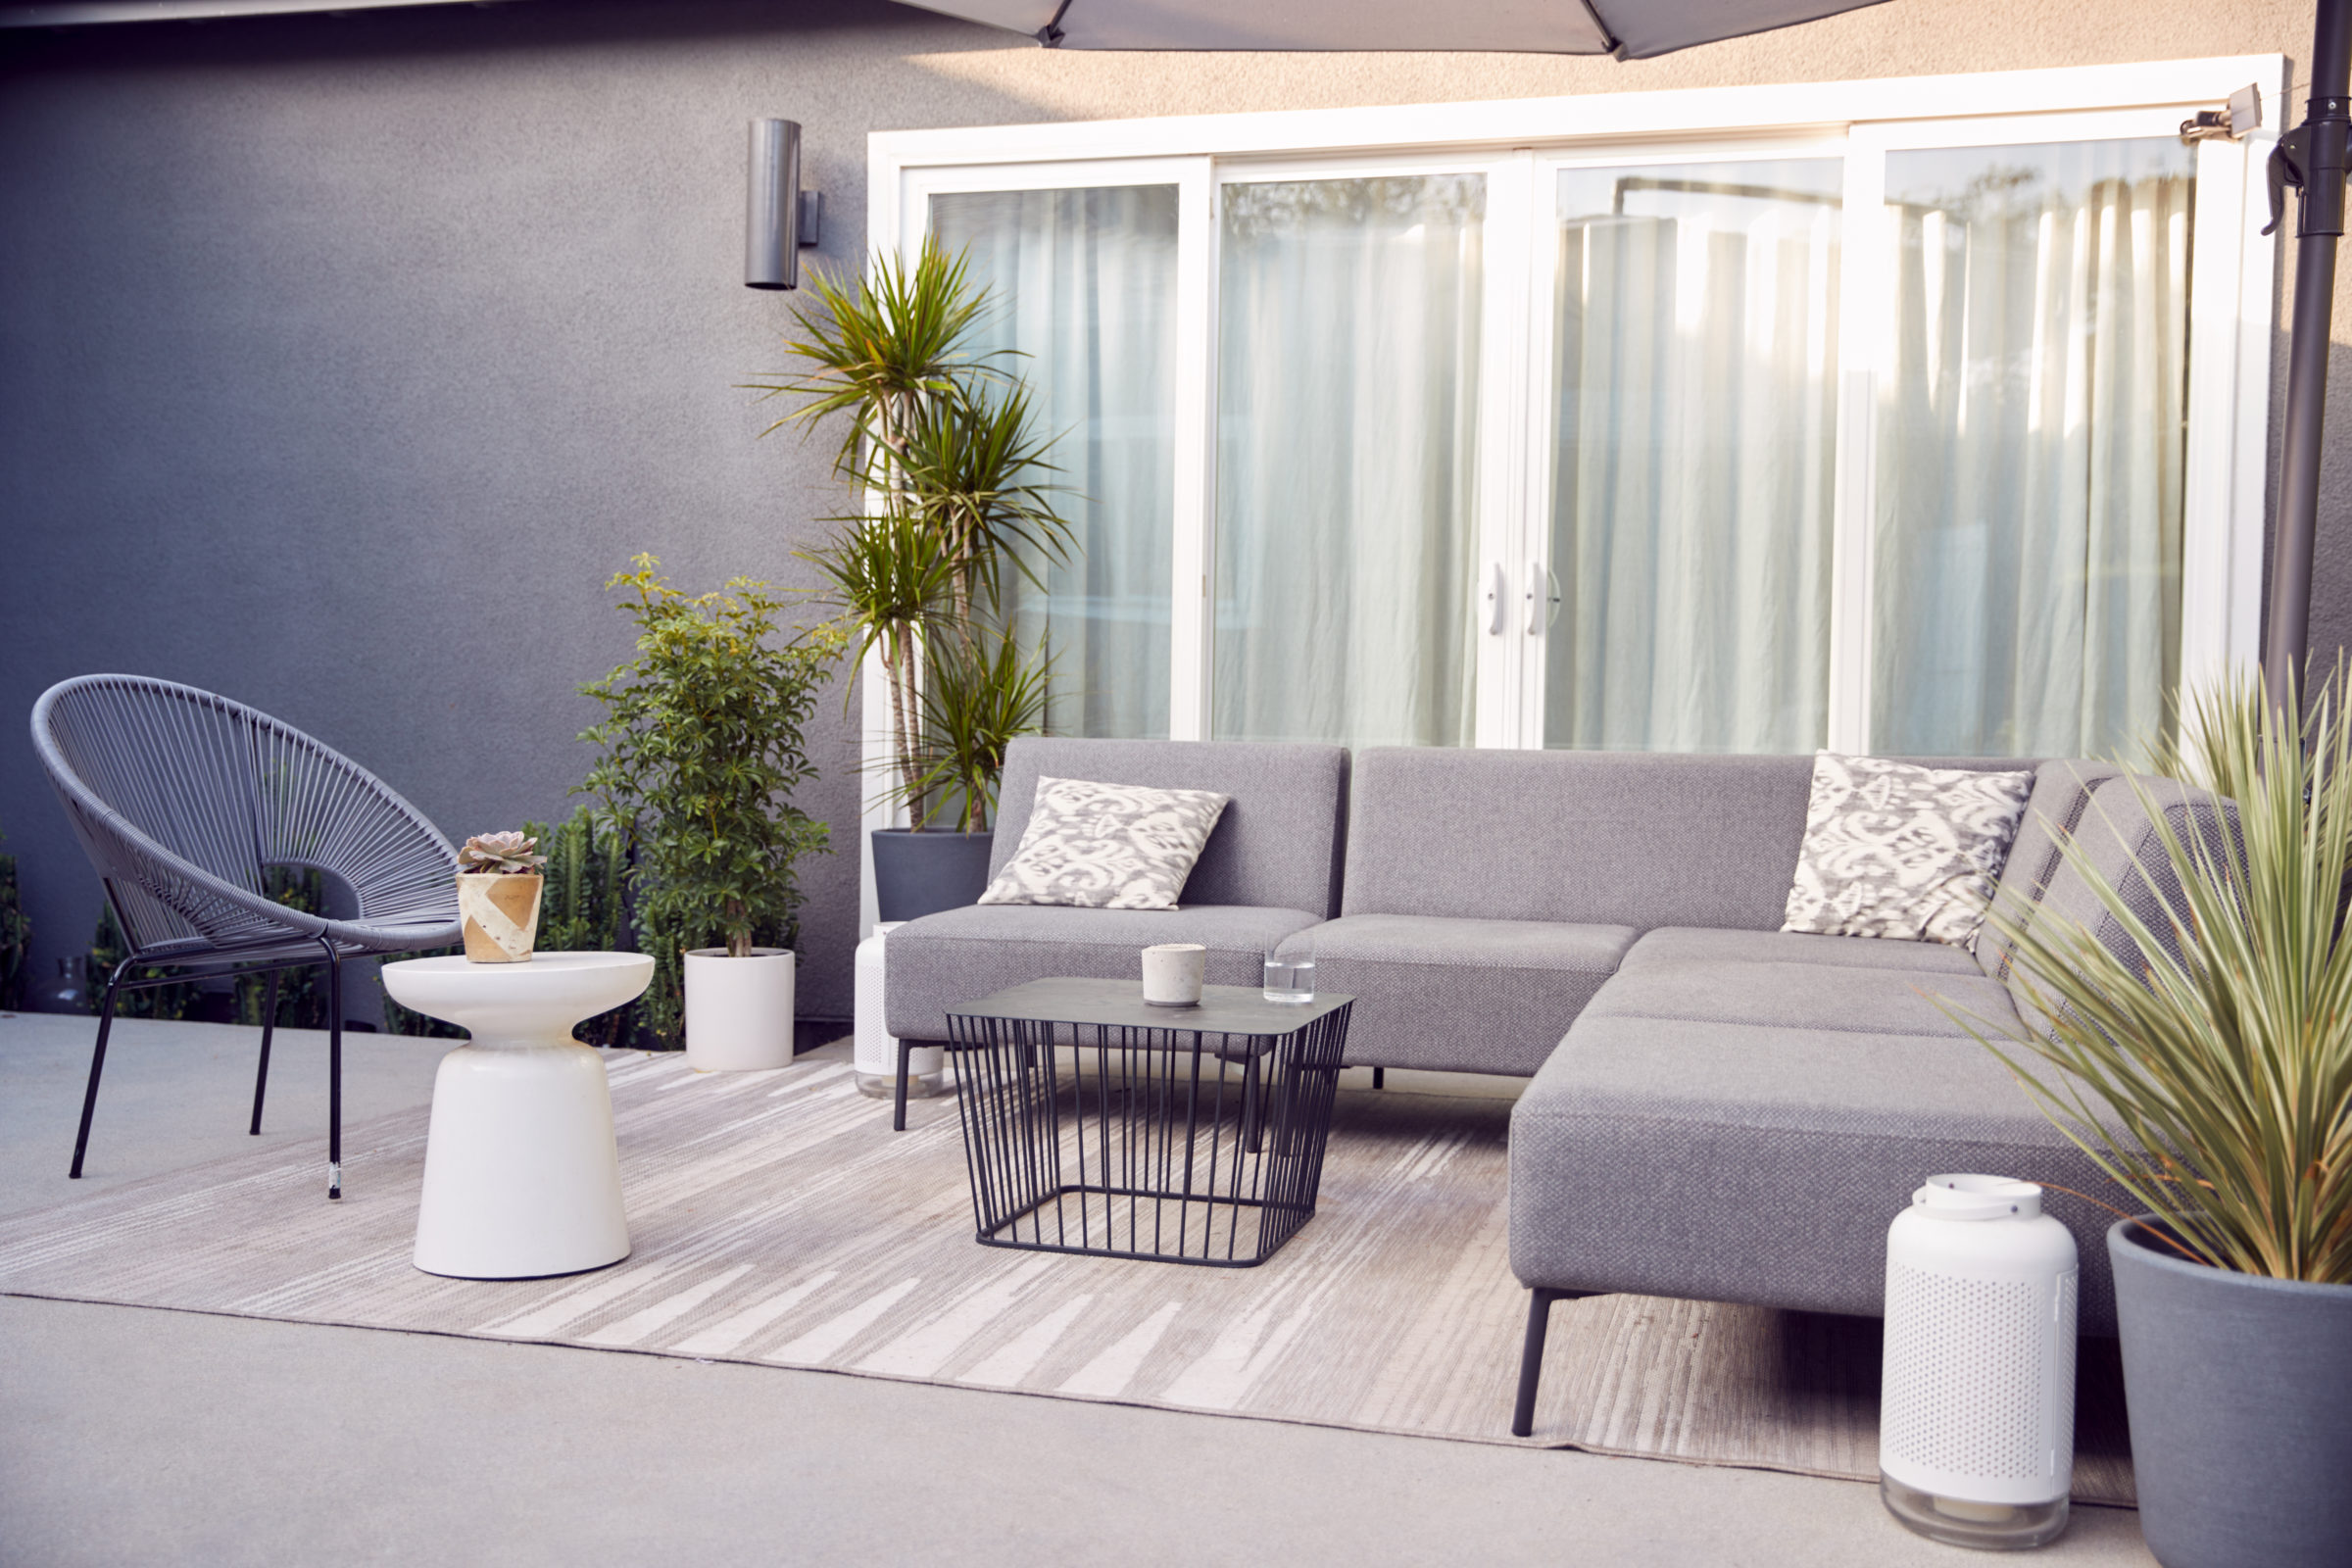 outdoor seating and garden furniture on patio of c 78LZMW9